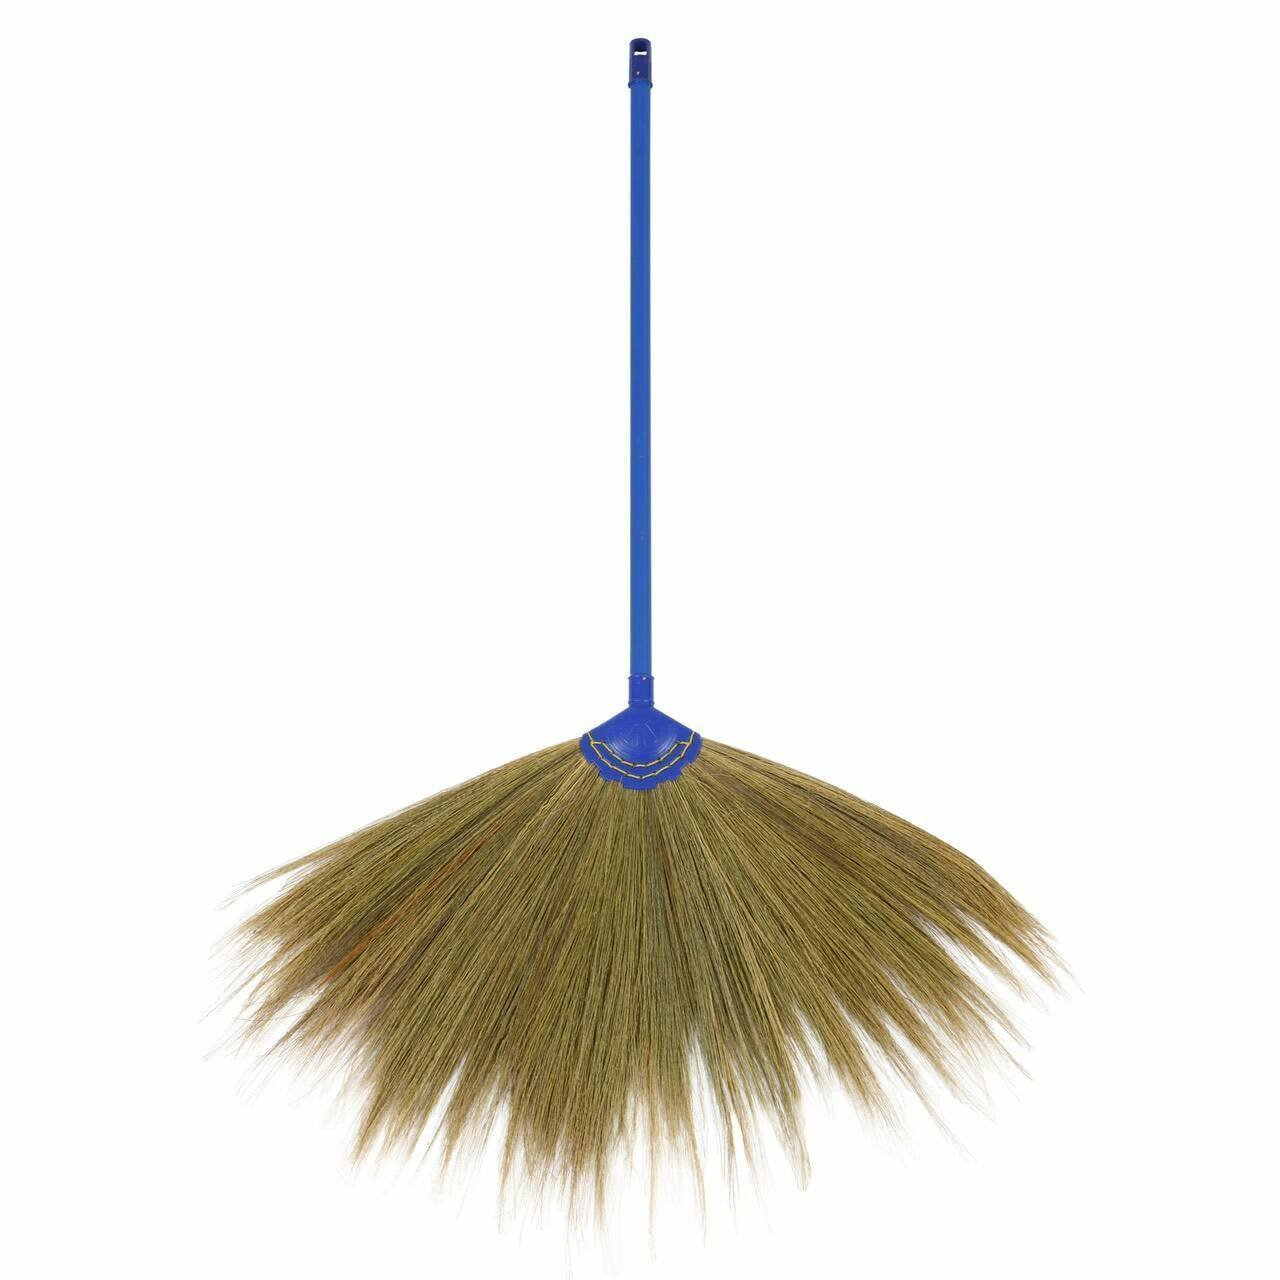 """Trendylife Broom, Grass Thai Tradition Handmade Color Plastic Handle, Sweep dust ,Straw Soft Broom Decor Gift Halloween soft and strong size 43"""" 1pc"""